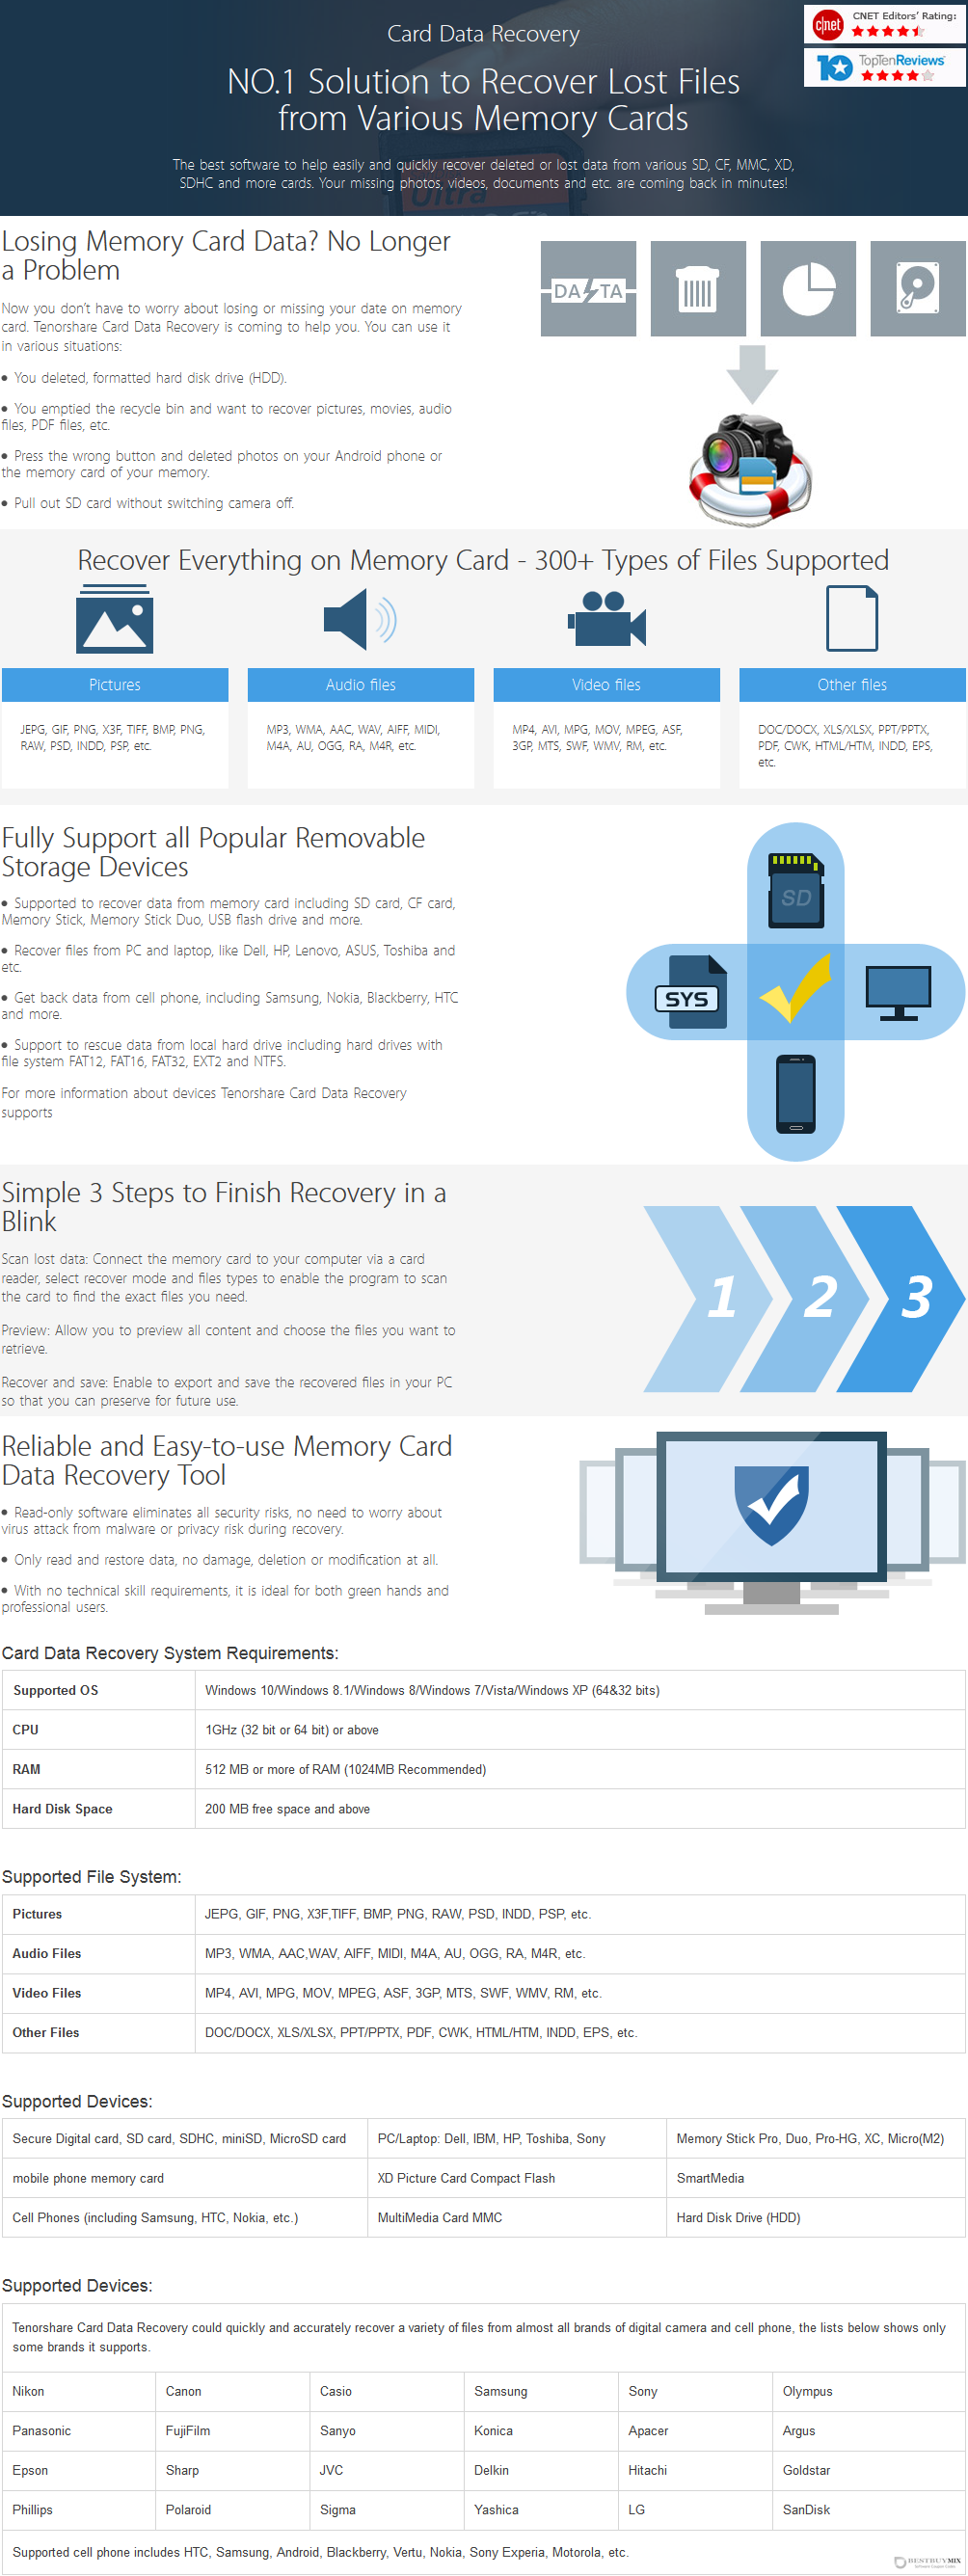 Tenorshare Card Data Recovery Discount Coupon Code